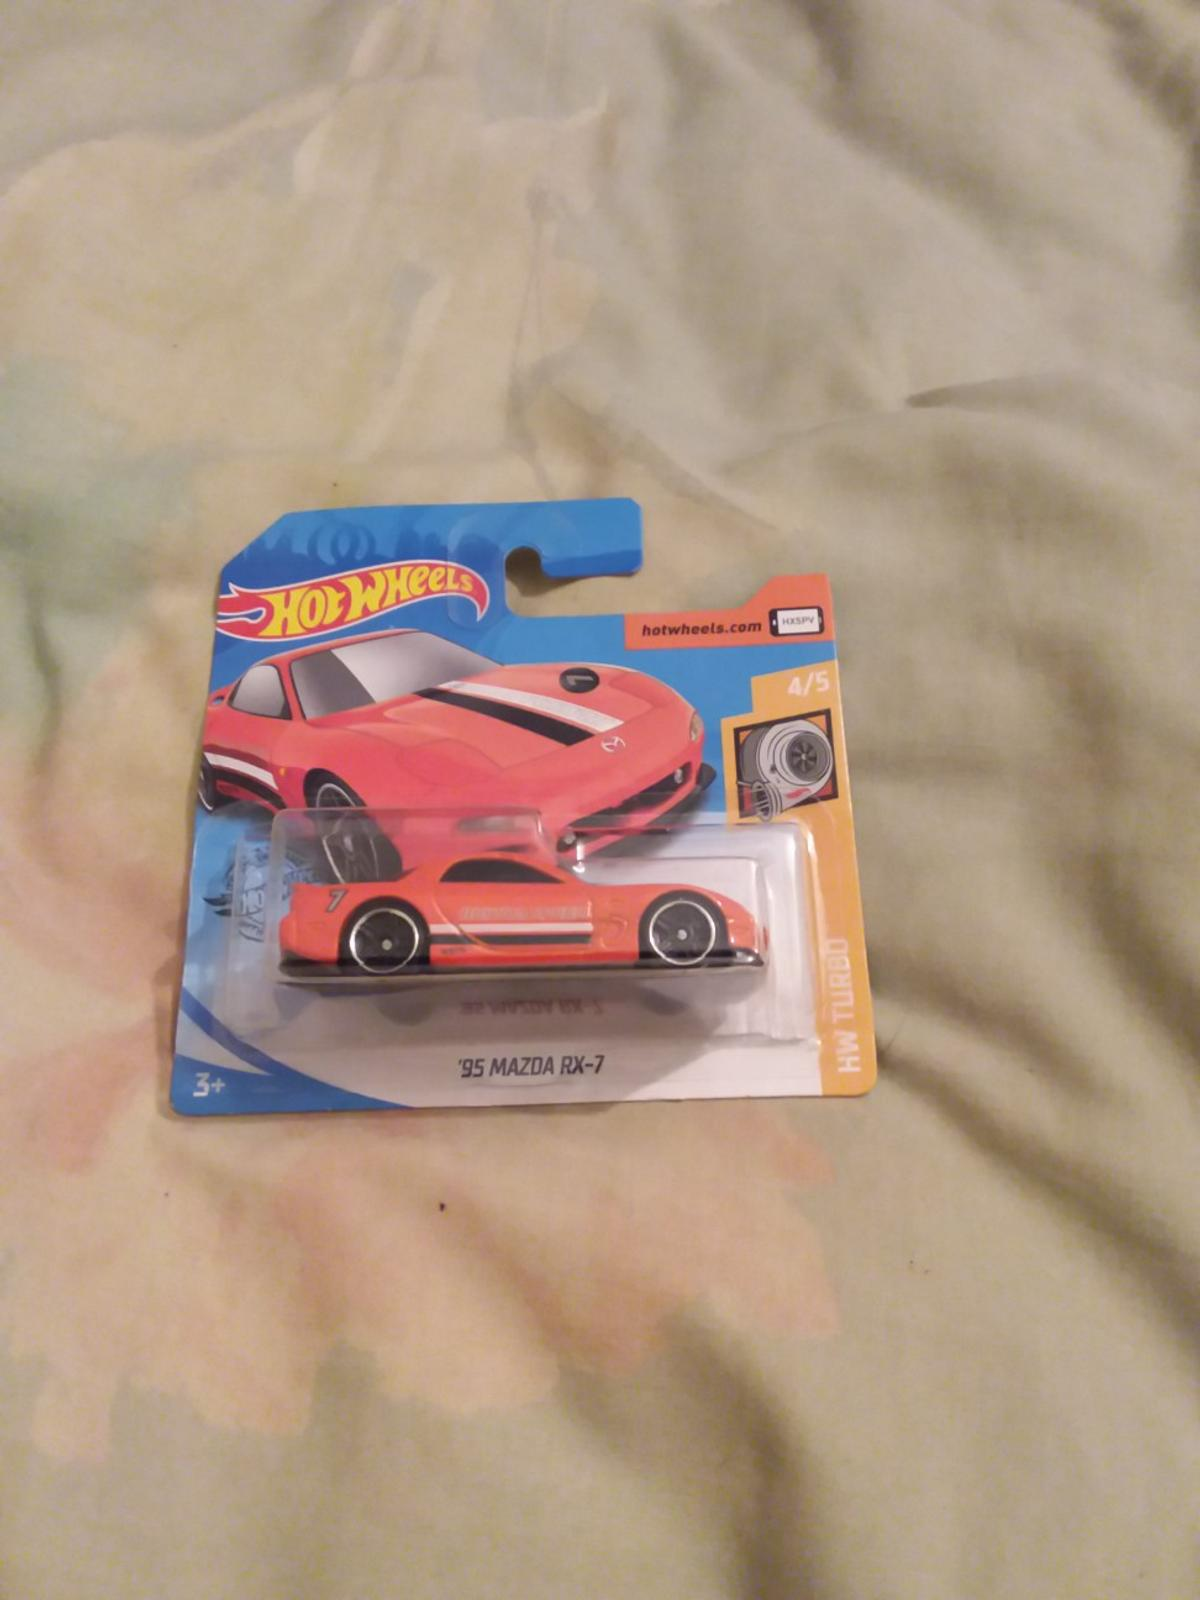 selling one hotswheels 95 Mazda rx 7 car much pick up cash on collection or can posted it frist class signed for